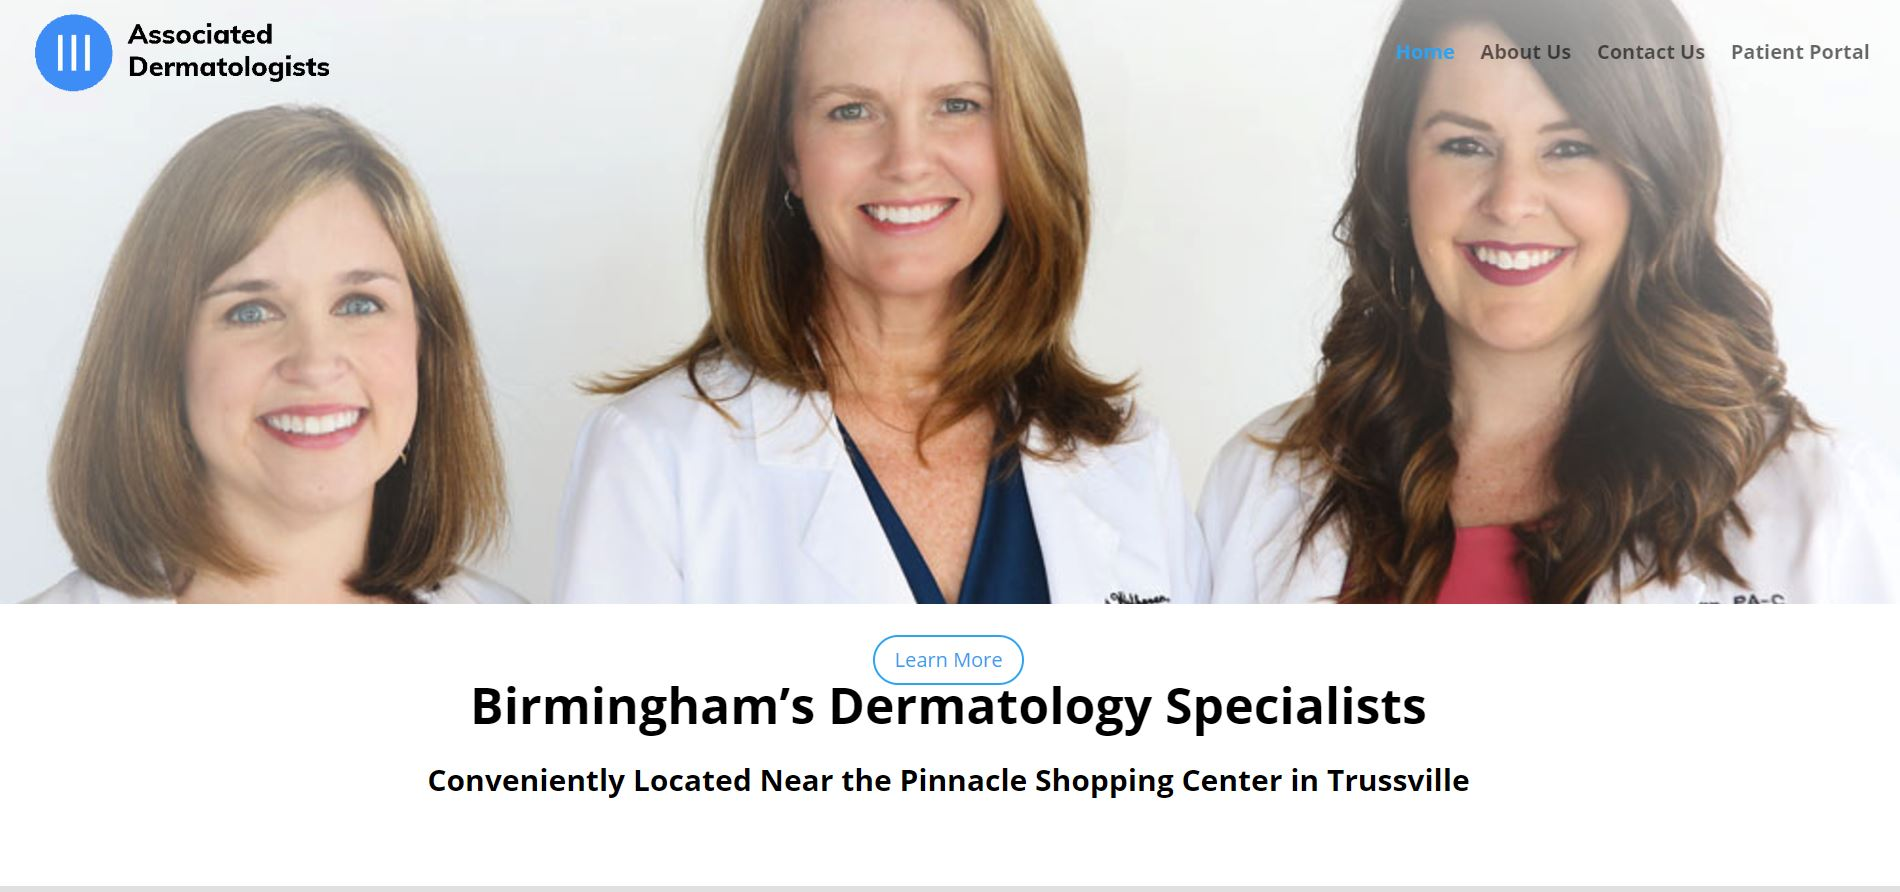 Birmingham's Dermatology Specialists